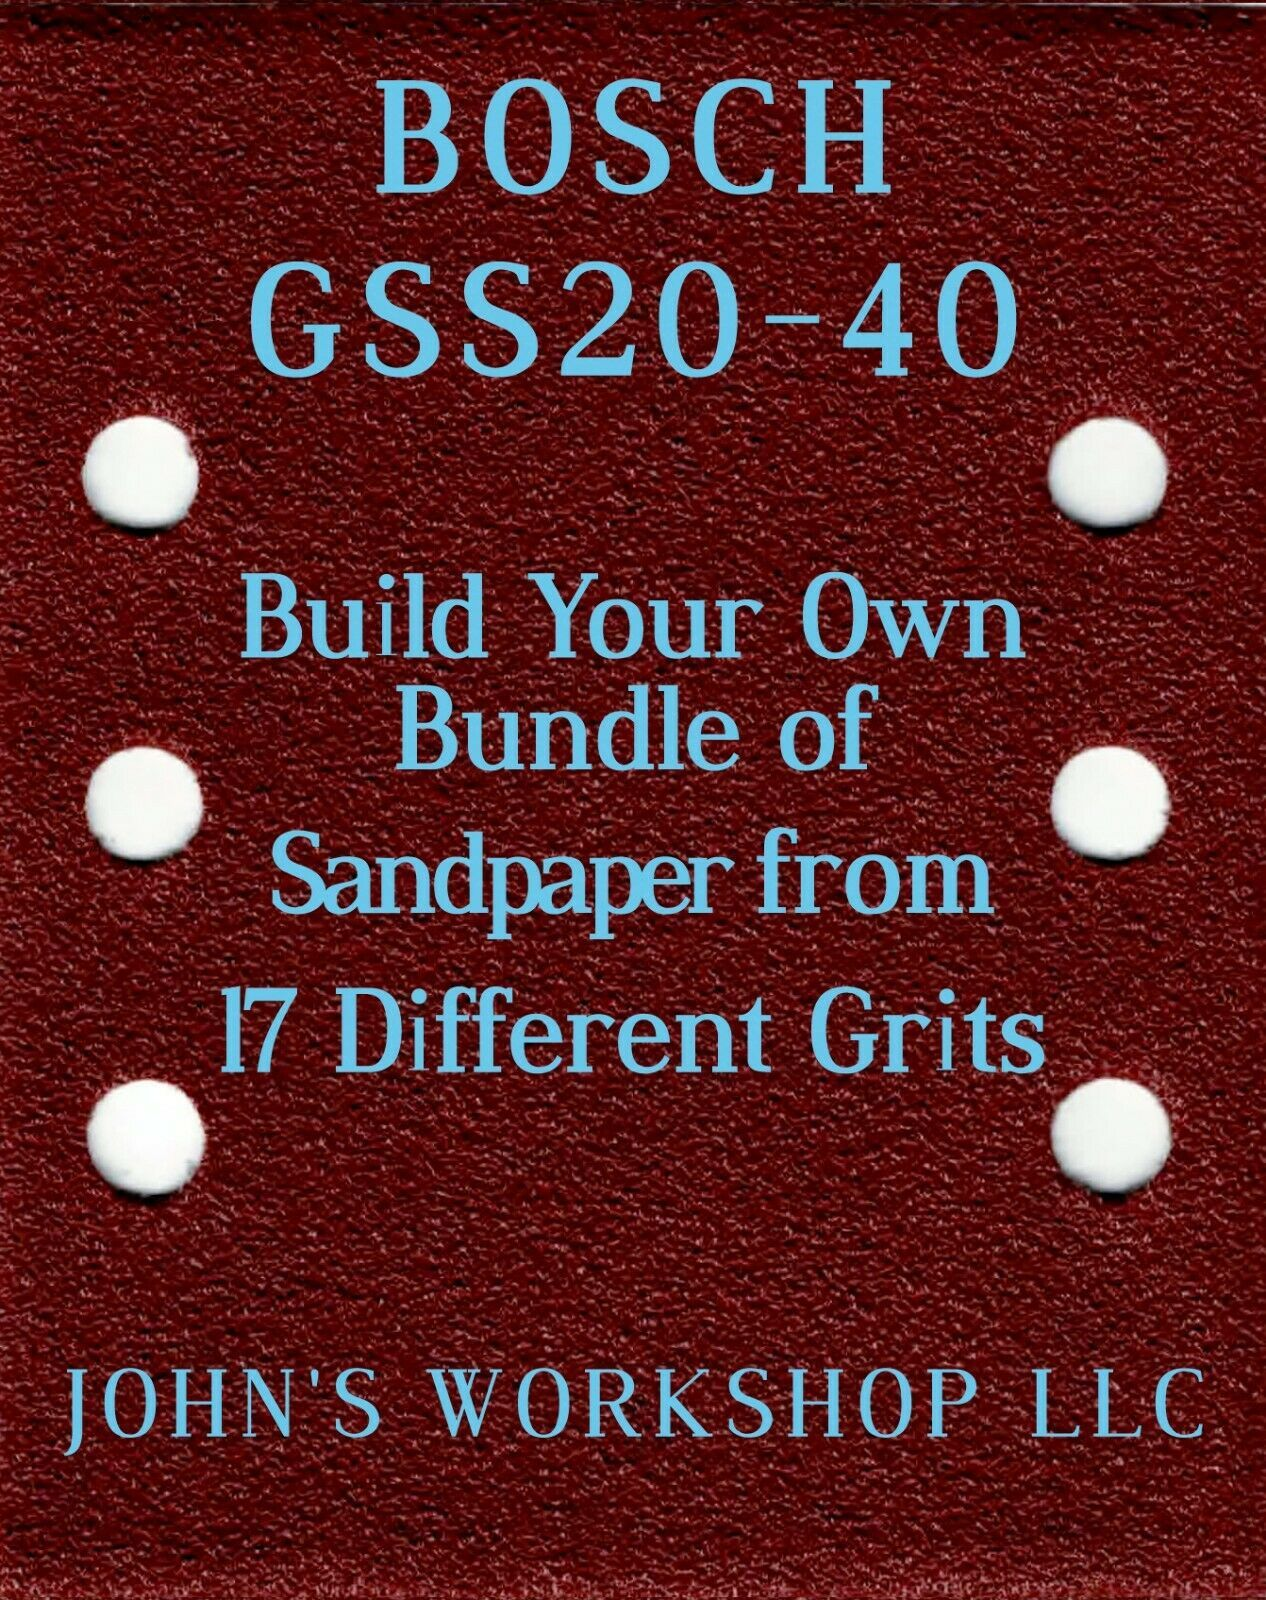 Primary image for Build Your Own Bundle BOSCH GSS20-40 1/4 Sheet No-Slip Sandpaper 17 Grits